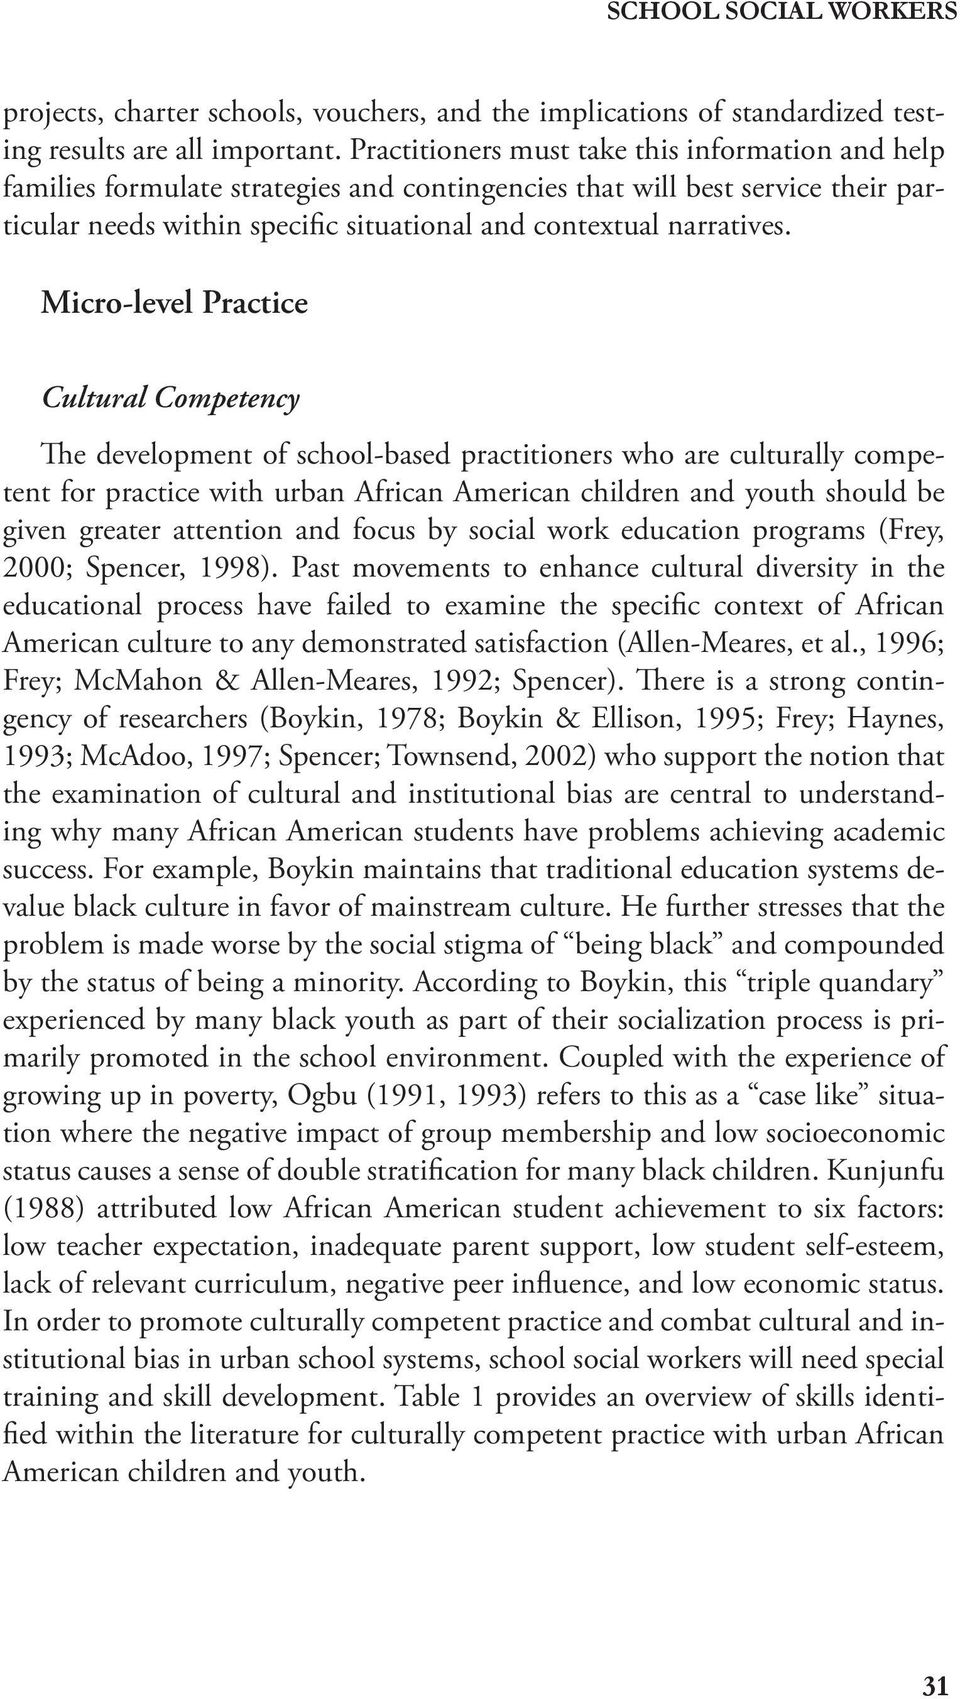 Micro-level Practice Cultural Competency e development of school-based practitioners who are culturally competent for practice with urban African American children and youth should be given greater